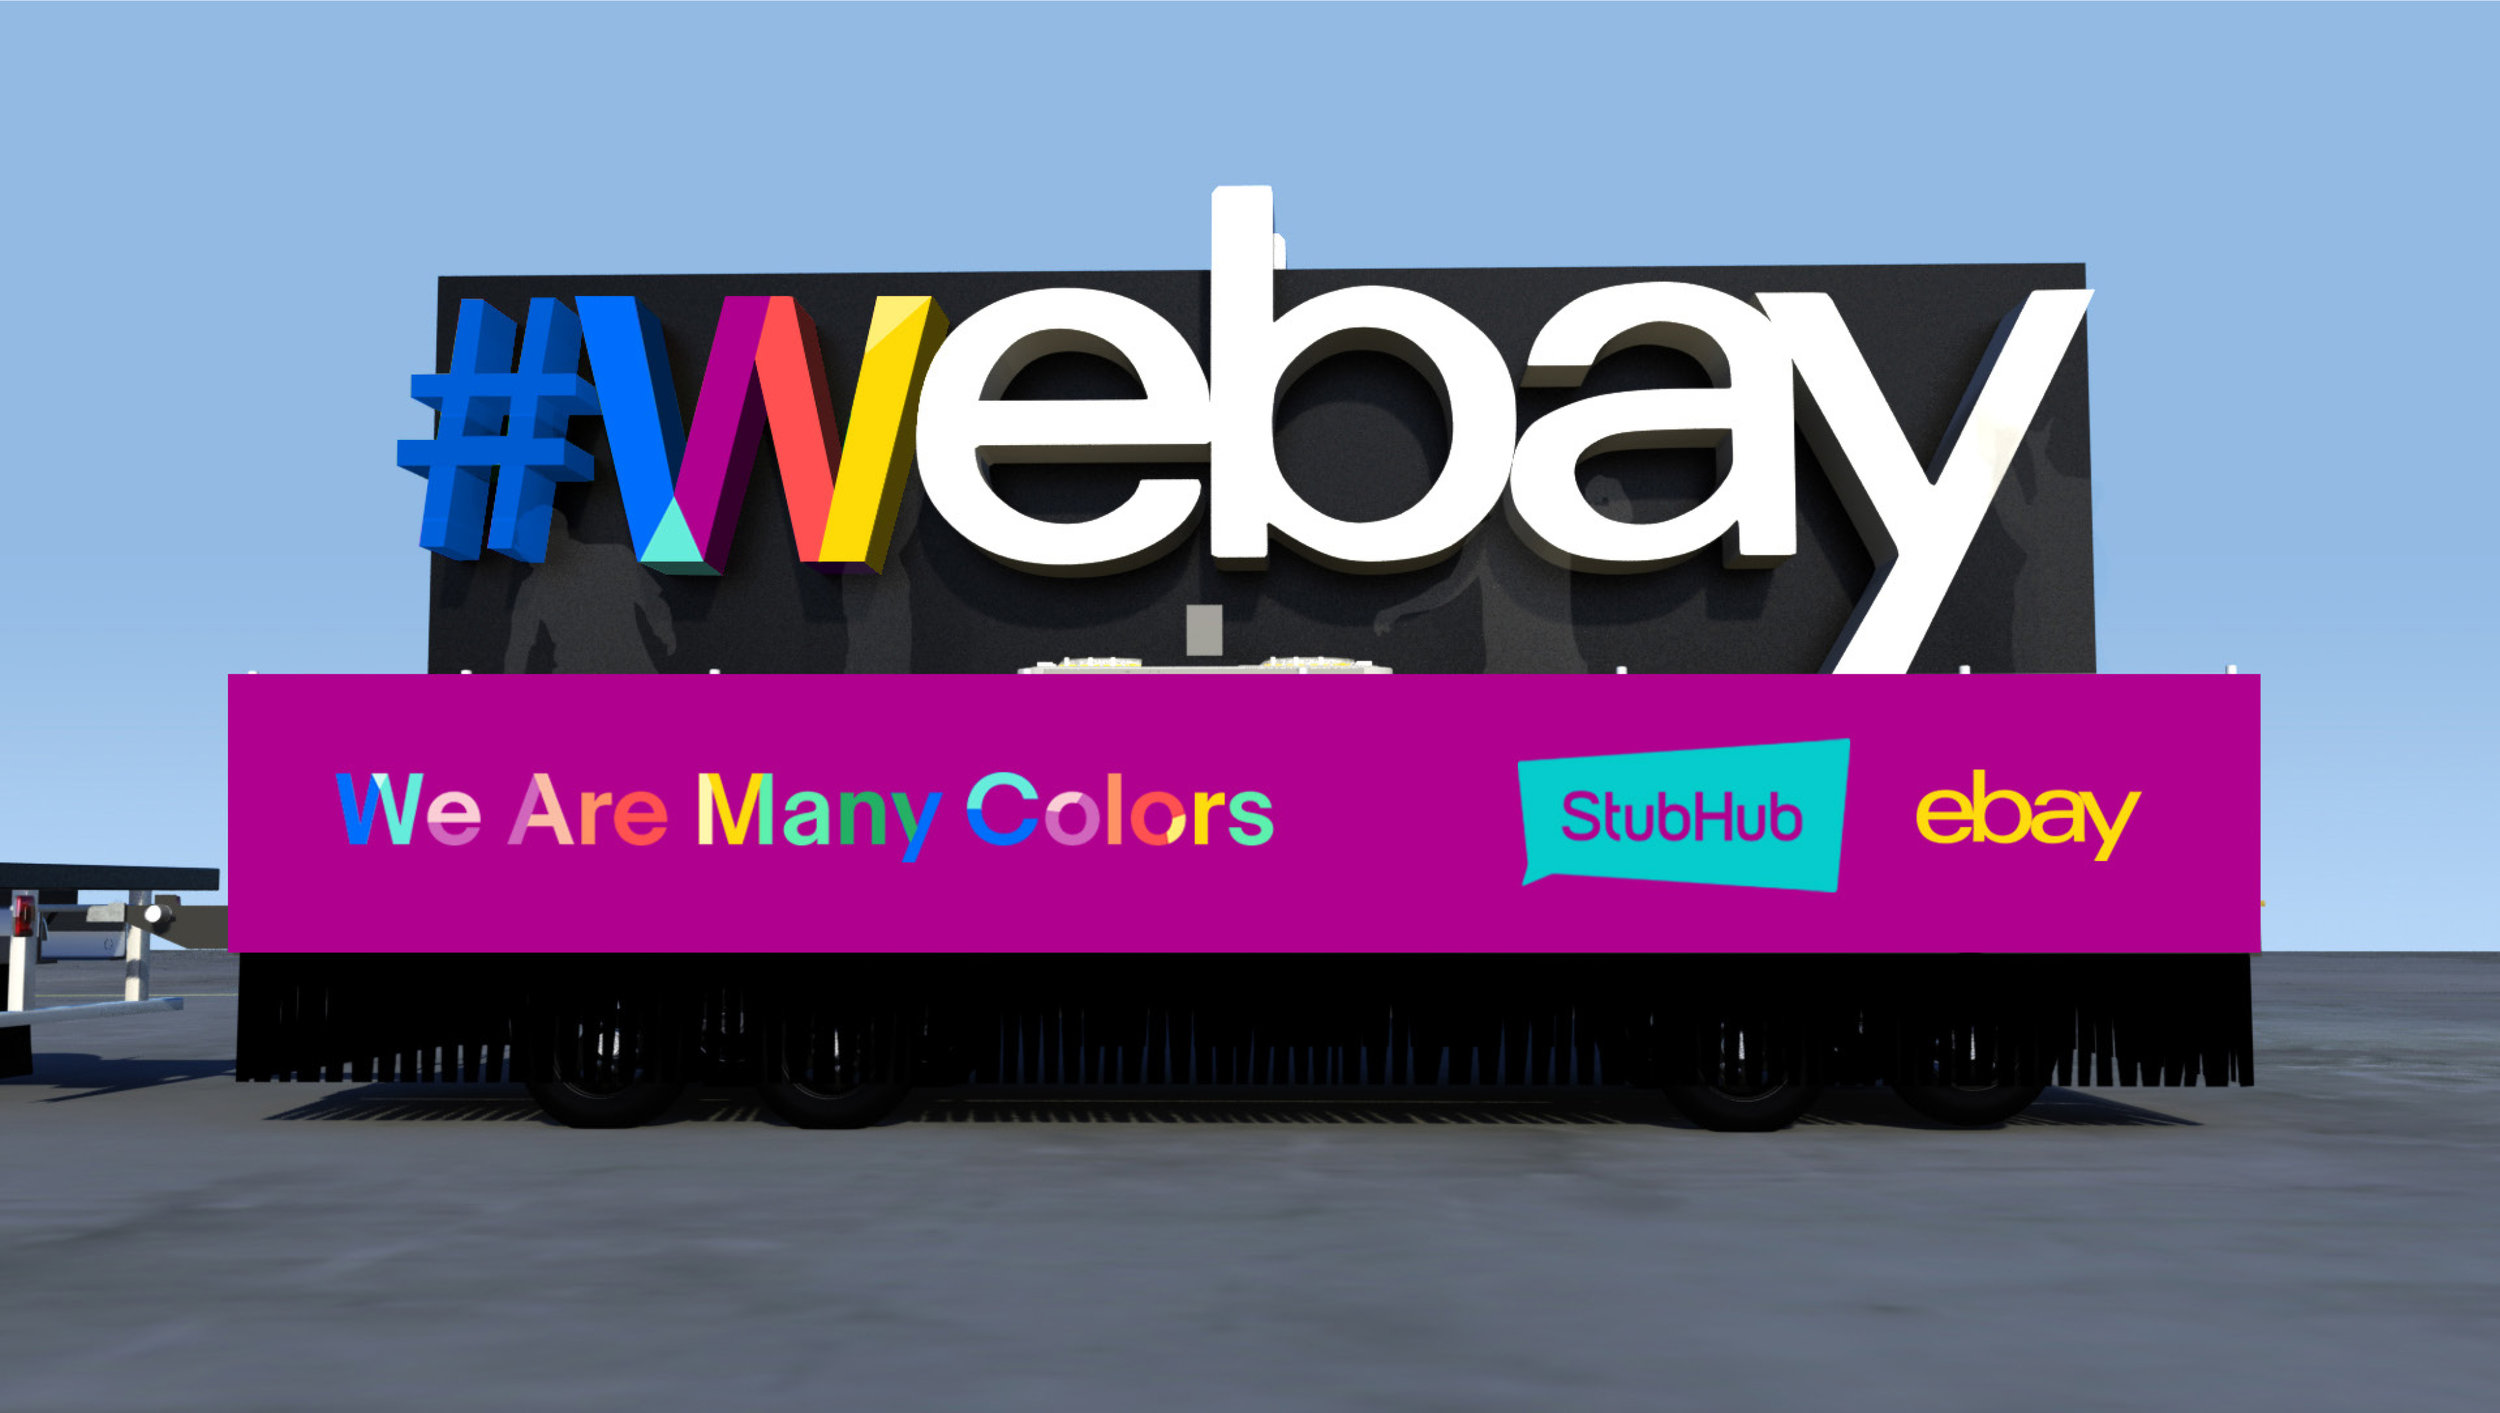 webay_Float_01.jpg